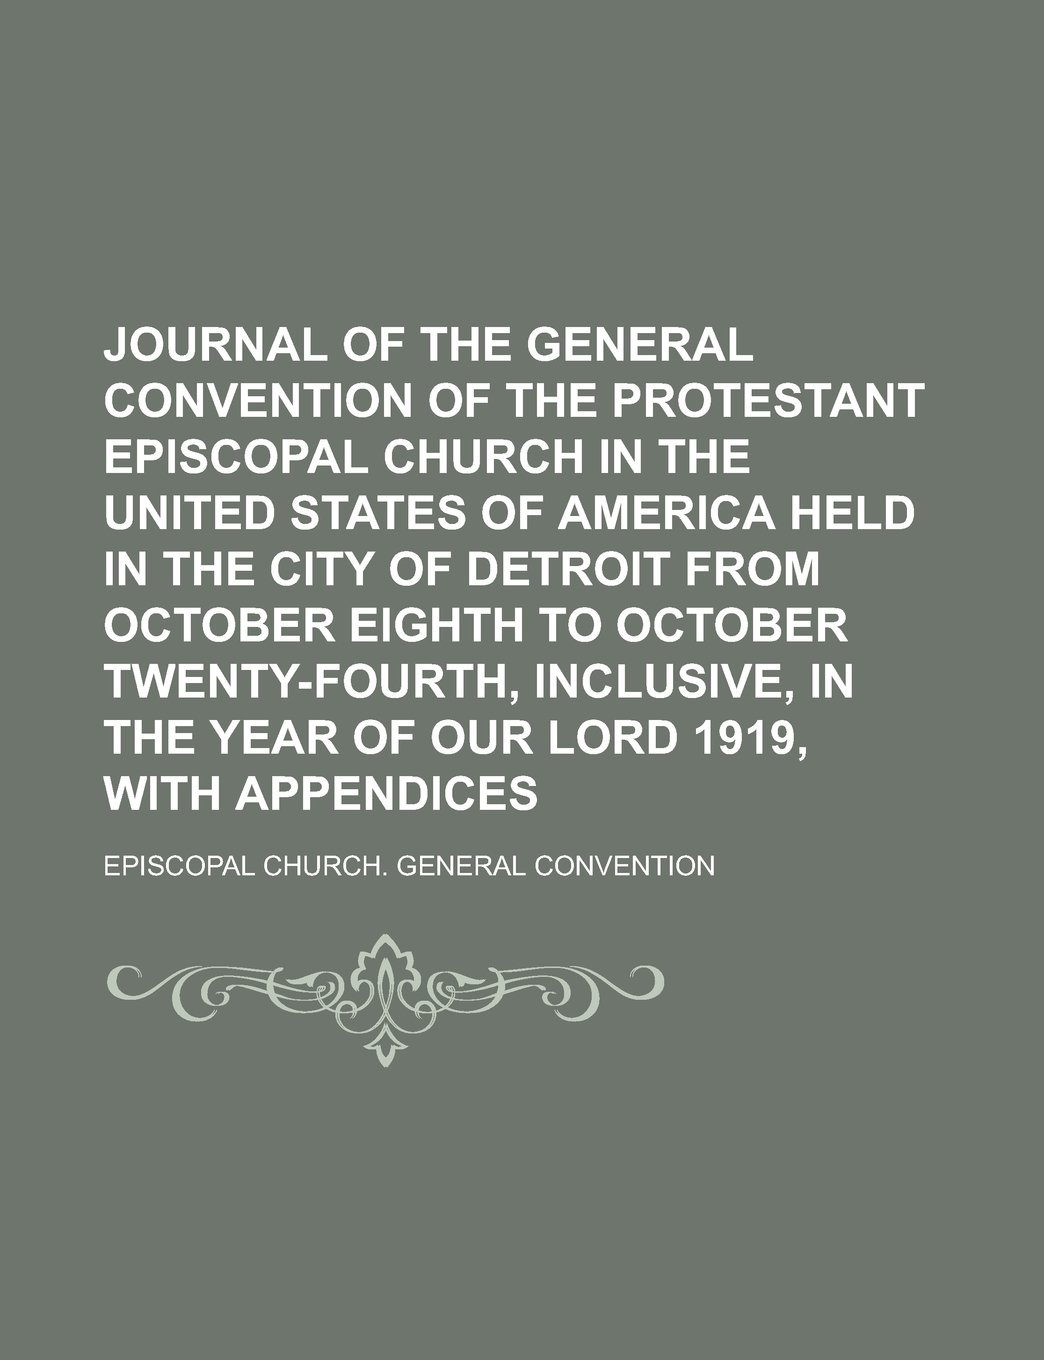 Download Journal of the general convention of the Protestant Episcopal church in the United States of America held in the city of Detroit from October eighth ... in the year of our Lord 1919, with appendices ebook